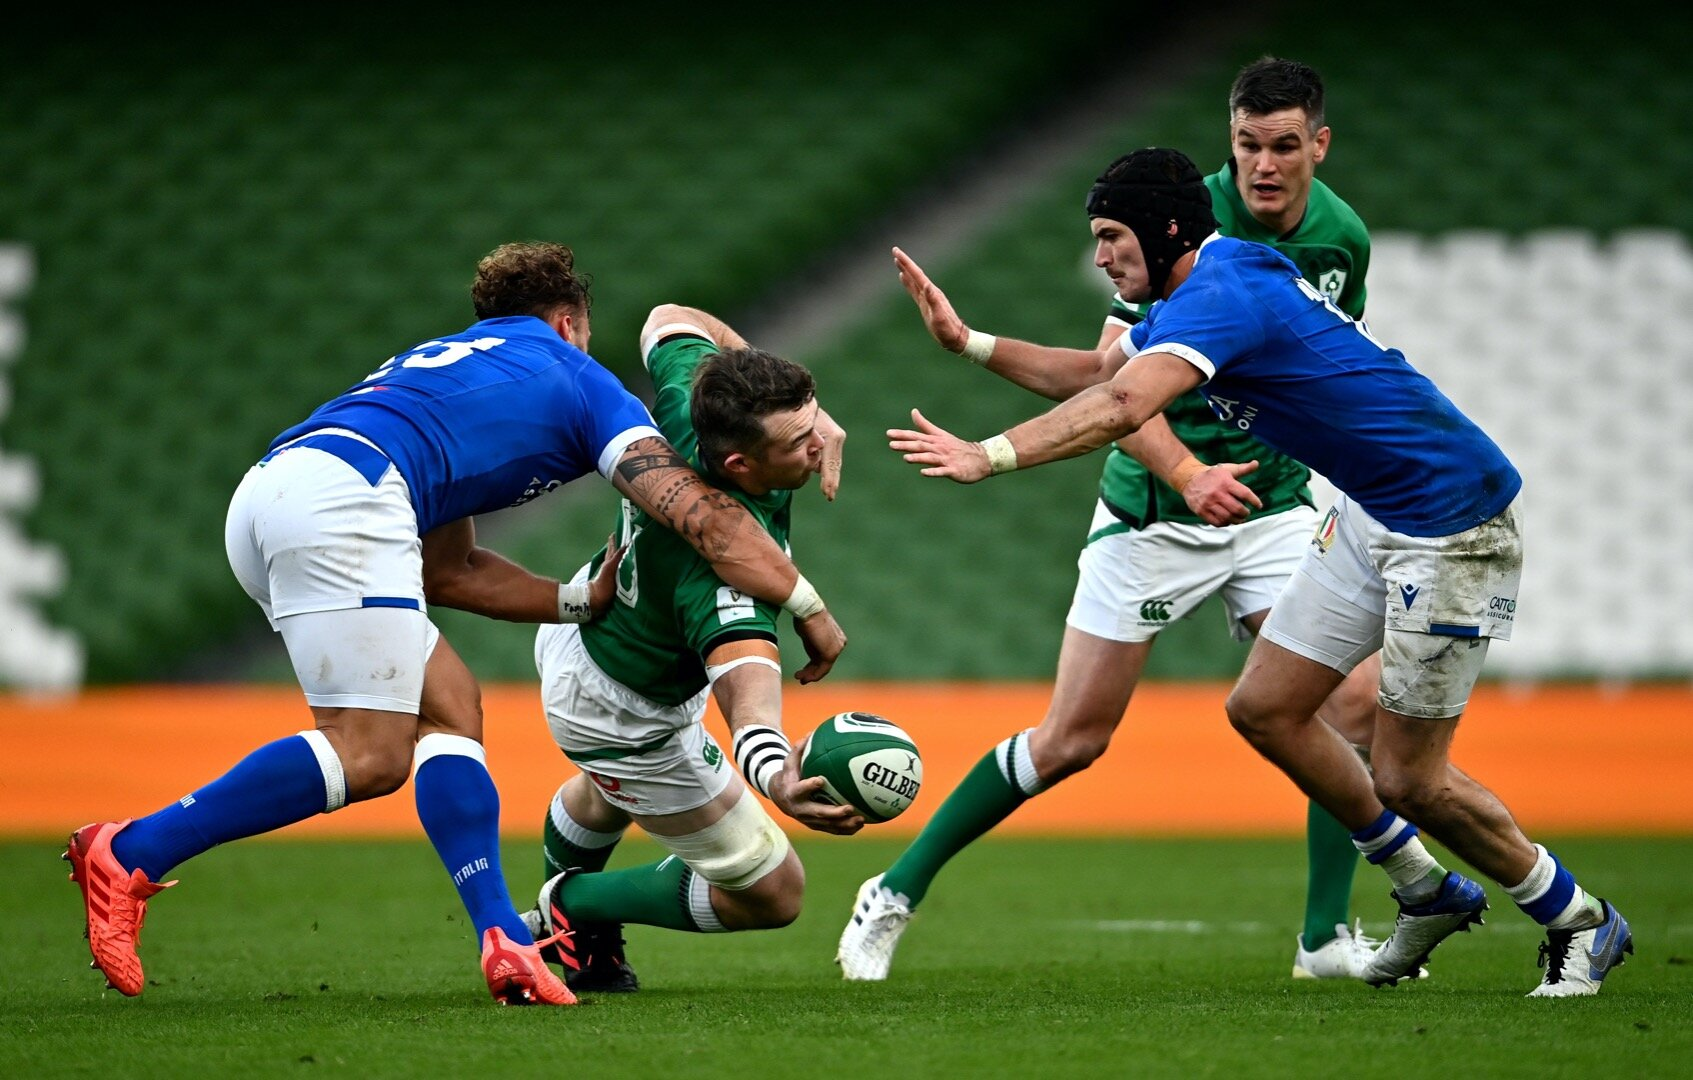 'You're given the license to do it' - O'Mahony praises focus on skills work after glorious offload against Italy